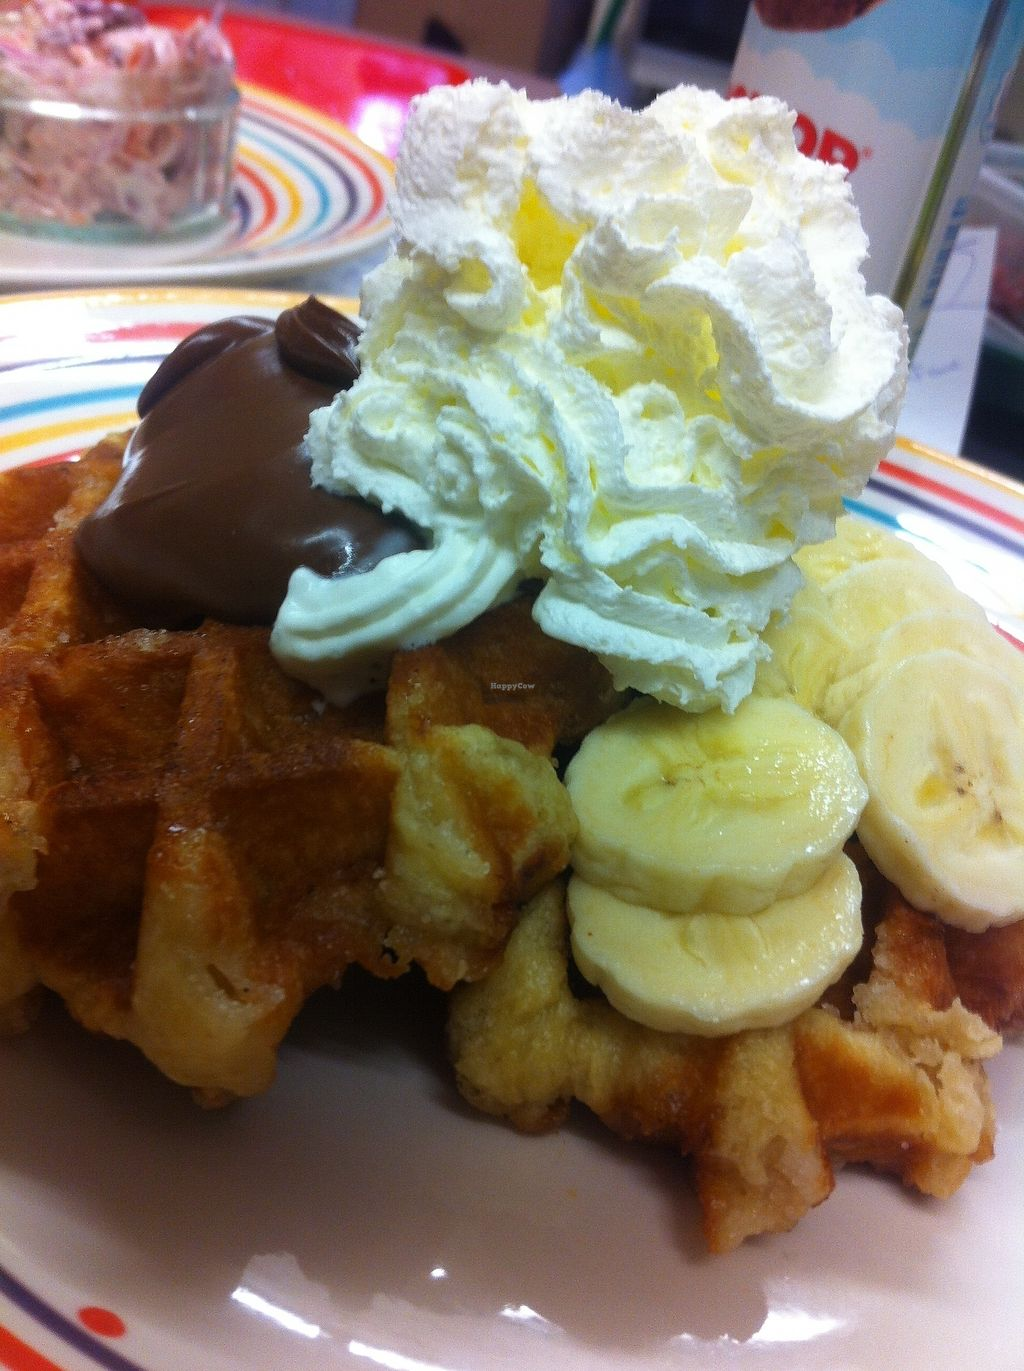 """Photo of Rock Ola  by <a href=""""/members/profile/Rocknroll"""">Rocknroll</a> <br/>Waffles with banana, Nutella and whipped cream for the veggies.We are working on a vegan waffle recipe....Coming soon! <br/> July 18, 2017  - <a href='/contact/abuse/image/28402/281818'>Report</a>"""